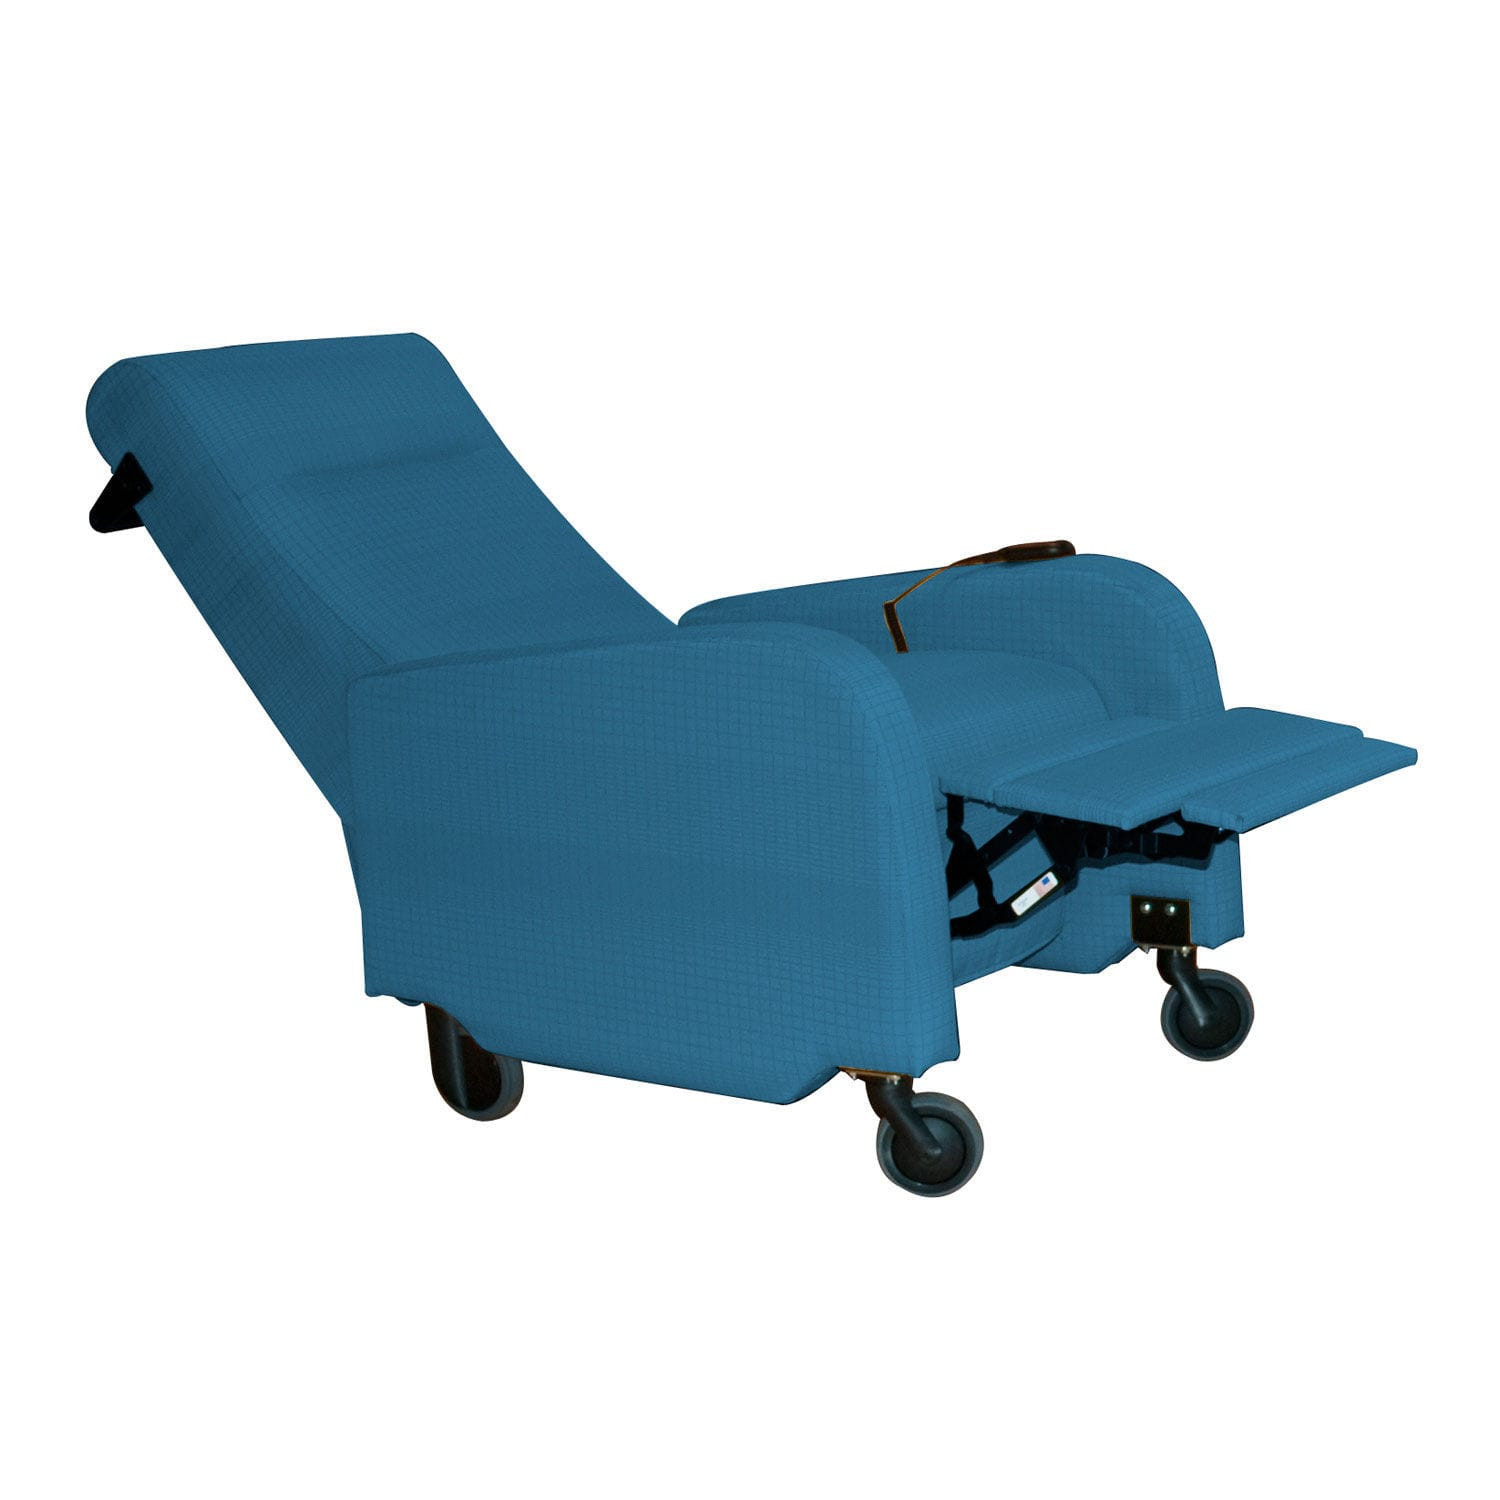 w phlebotomy formerly medical lbs recliner umf equipment power chair lo associates capacity claflin hospital cme hi rsi